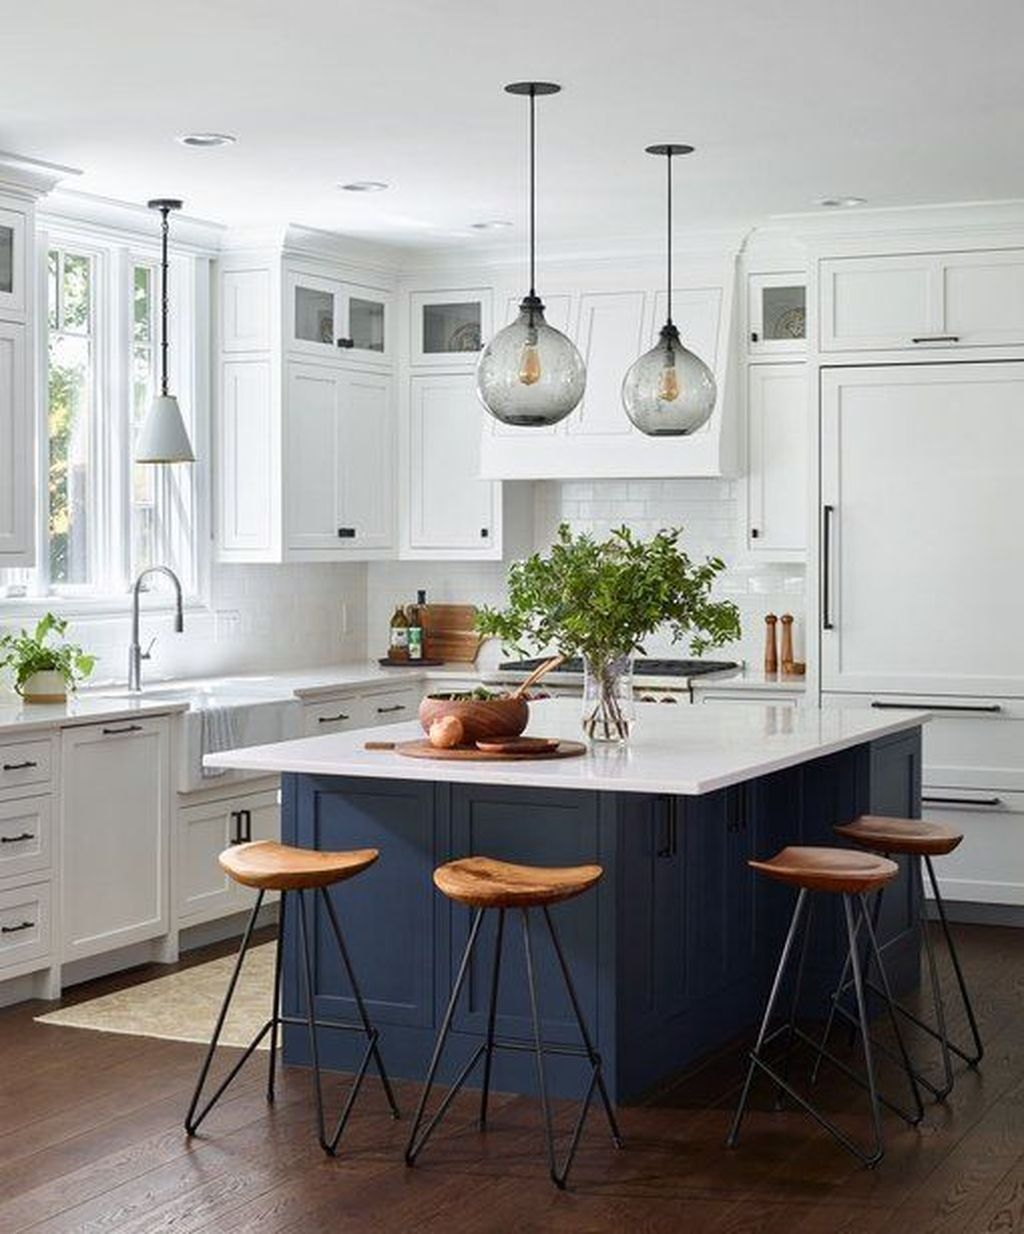 31 Admirable Kitchen Island Ideas To Beautify Your Kitchen Transitional Decor Kitchen Traditional Kitchen Design Kitchen Remodel Small